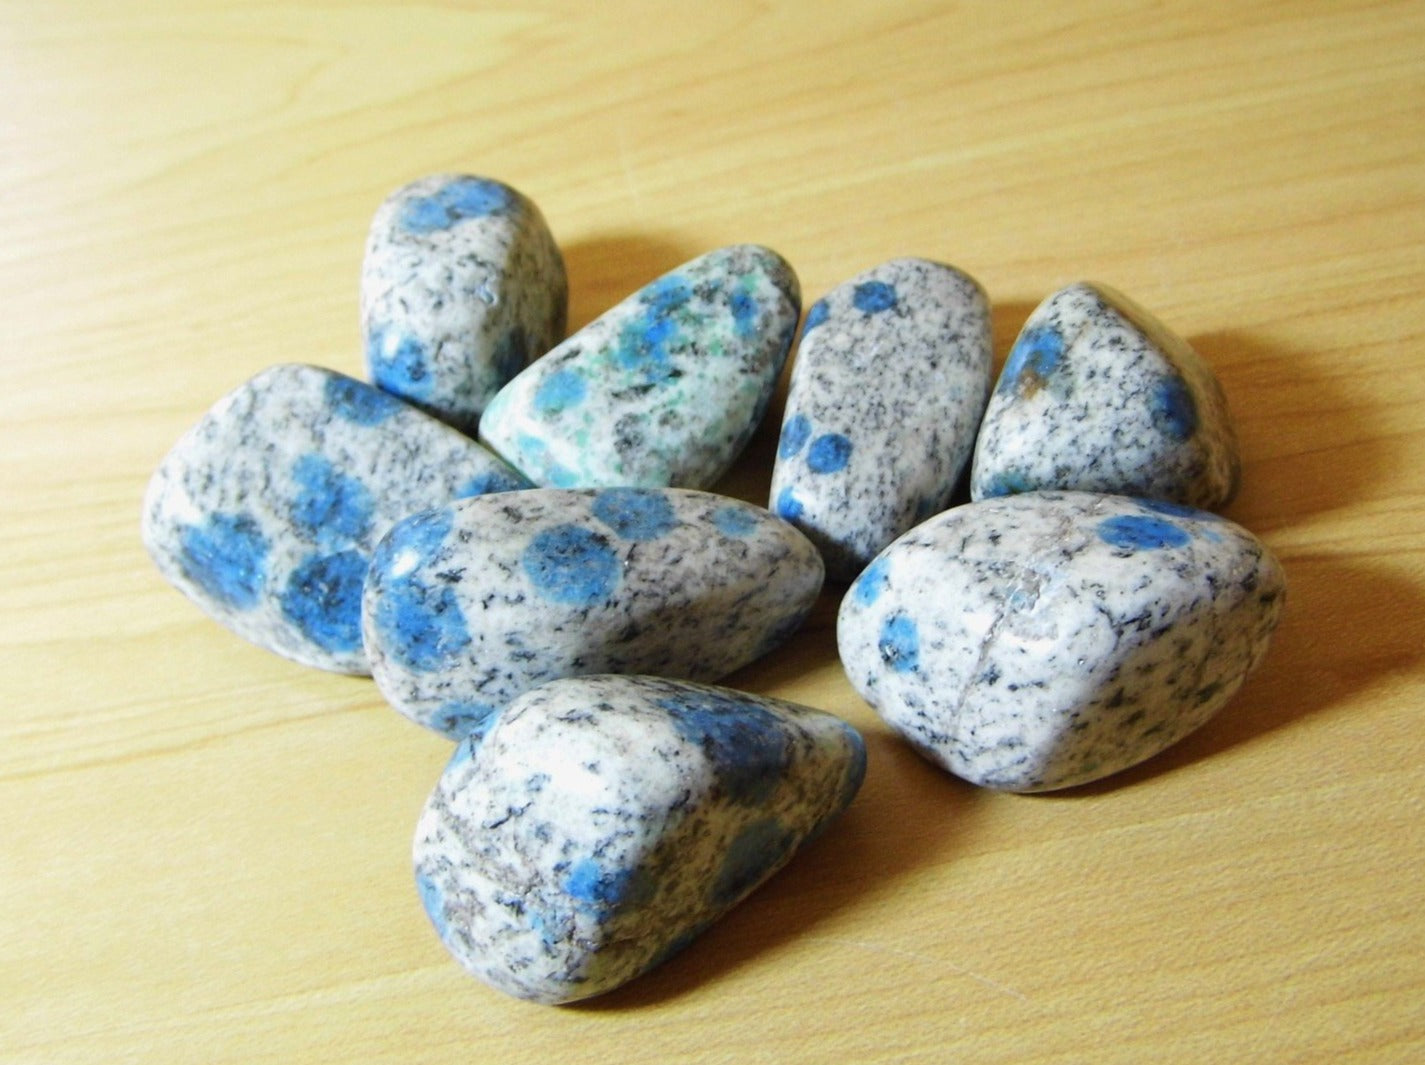 K2-Granite Tumblestone Lrg - Earth's Treasures